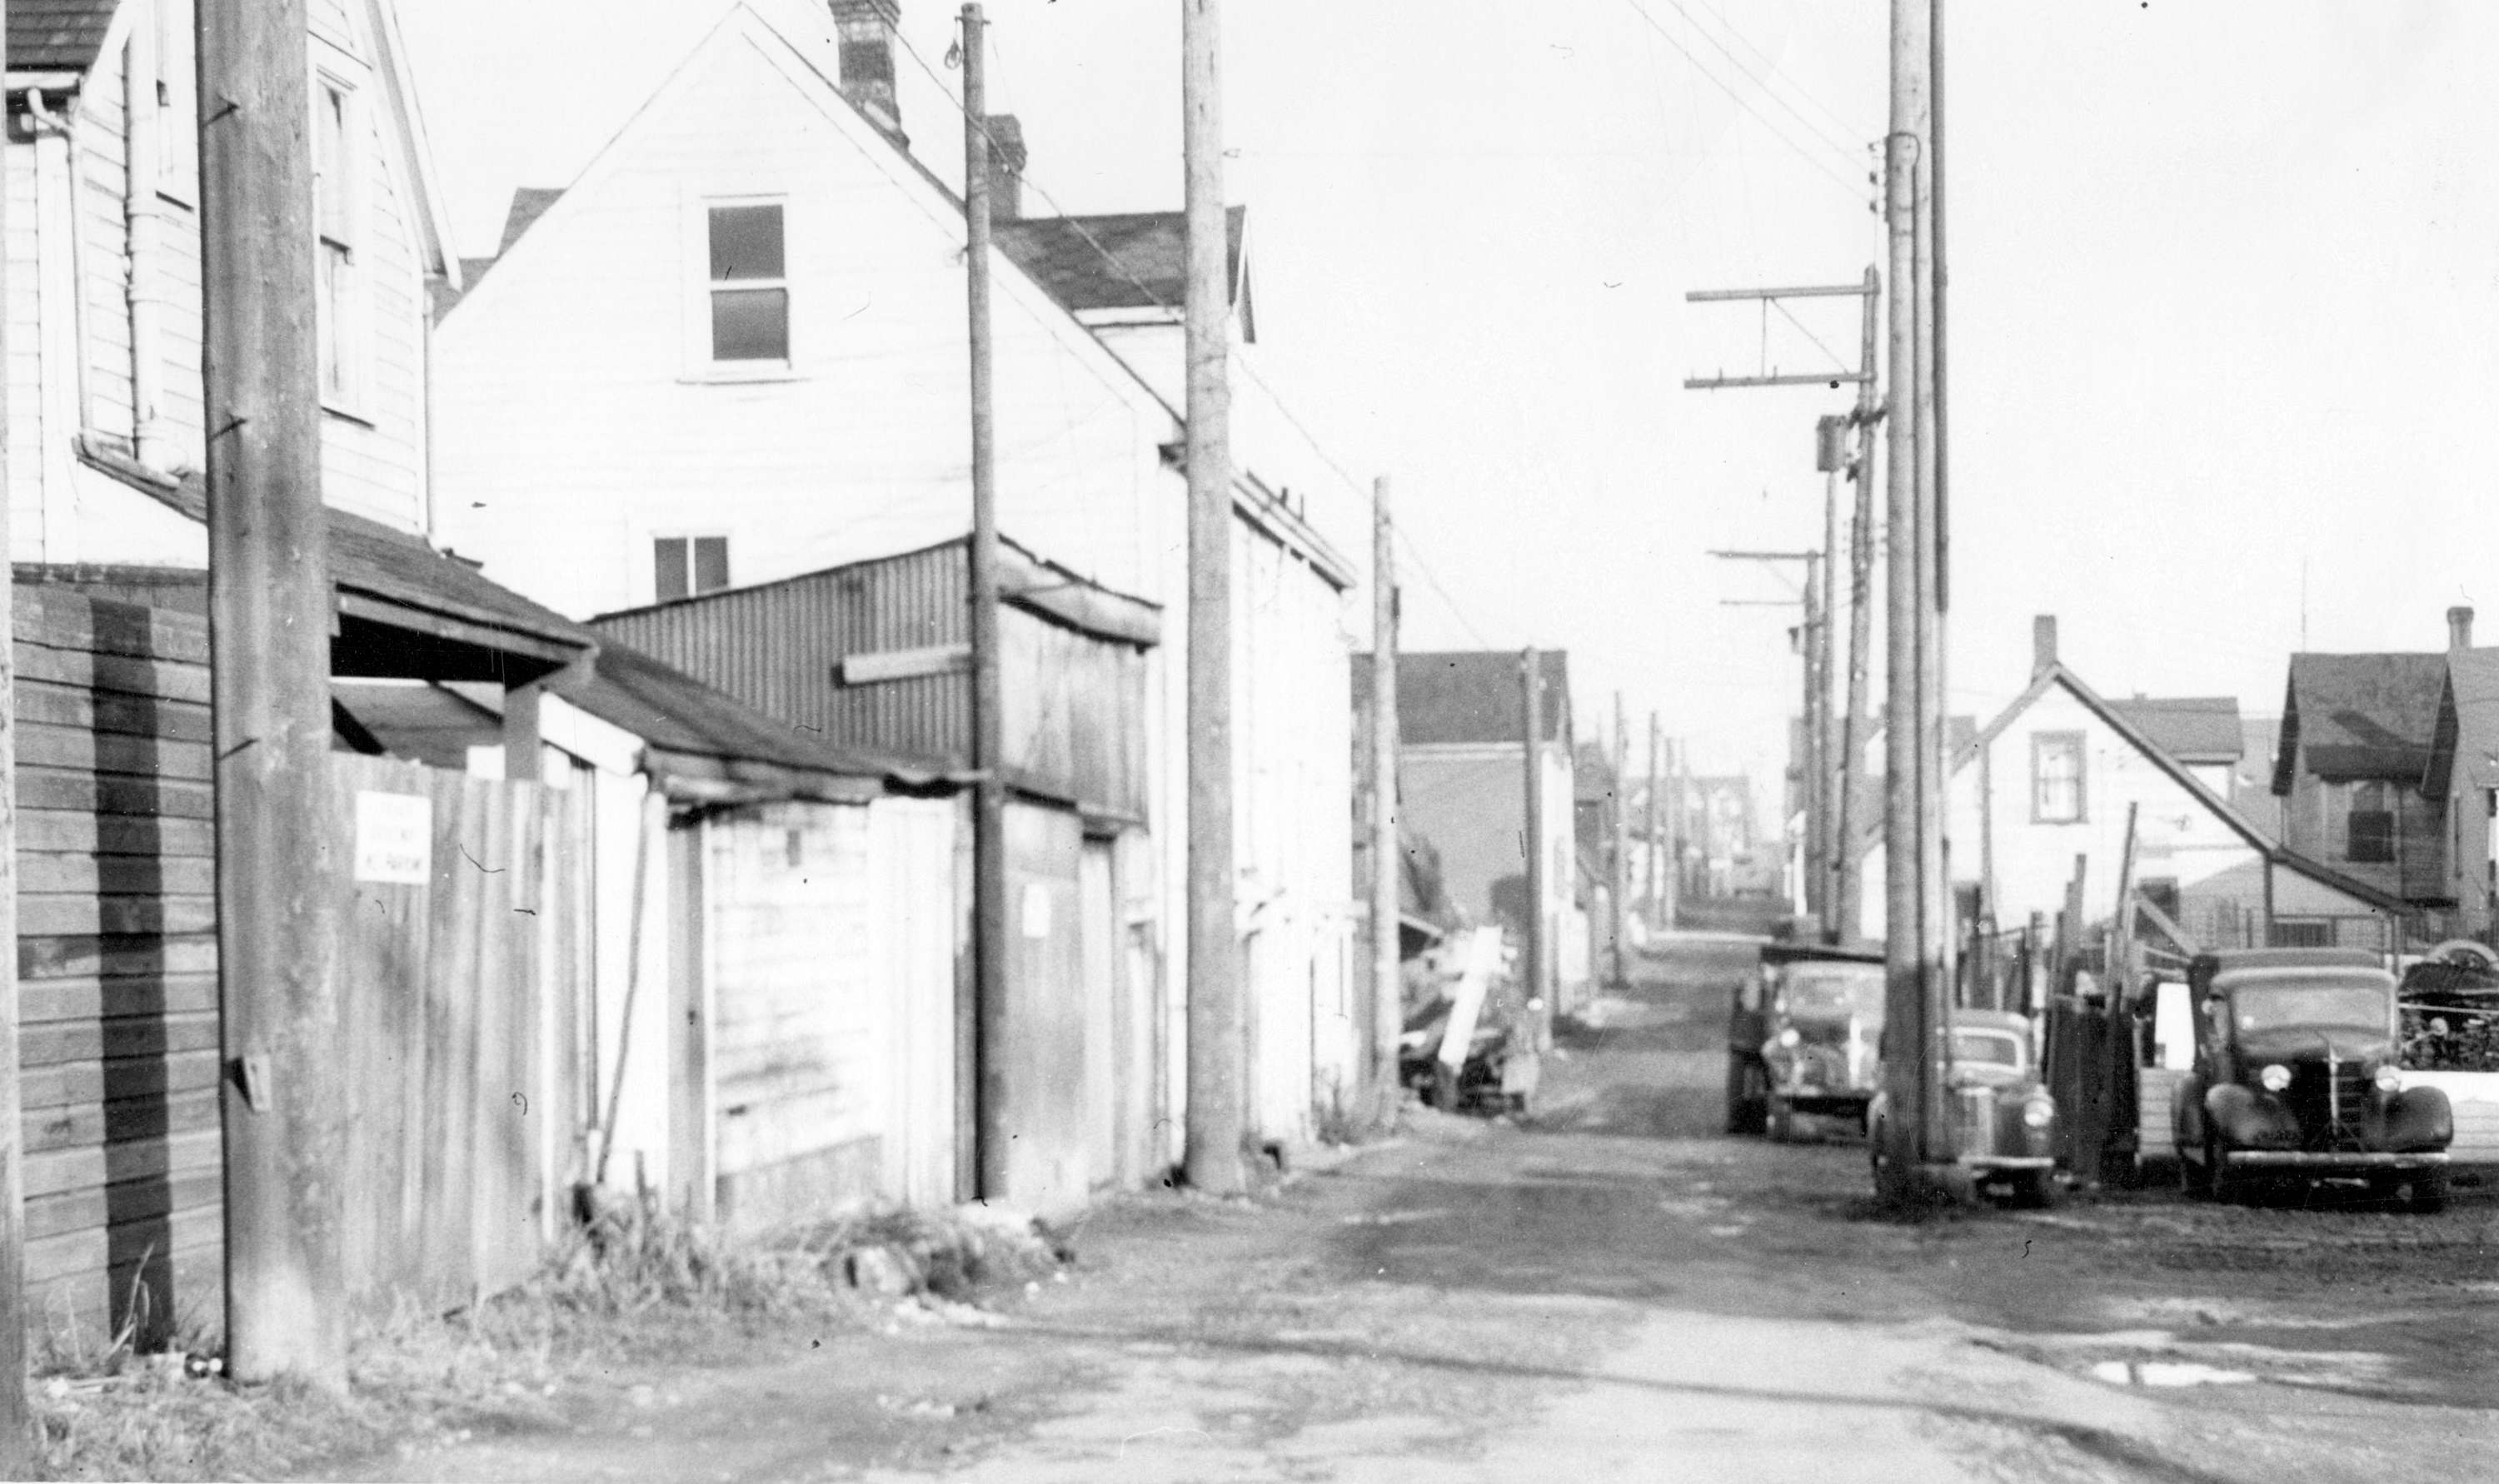 A section of Hogan's Alley, April 1958, Vancouver, B.C.